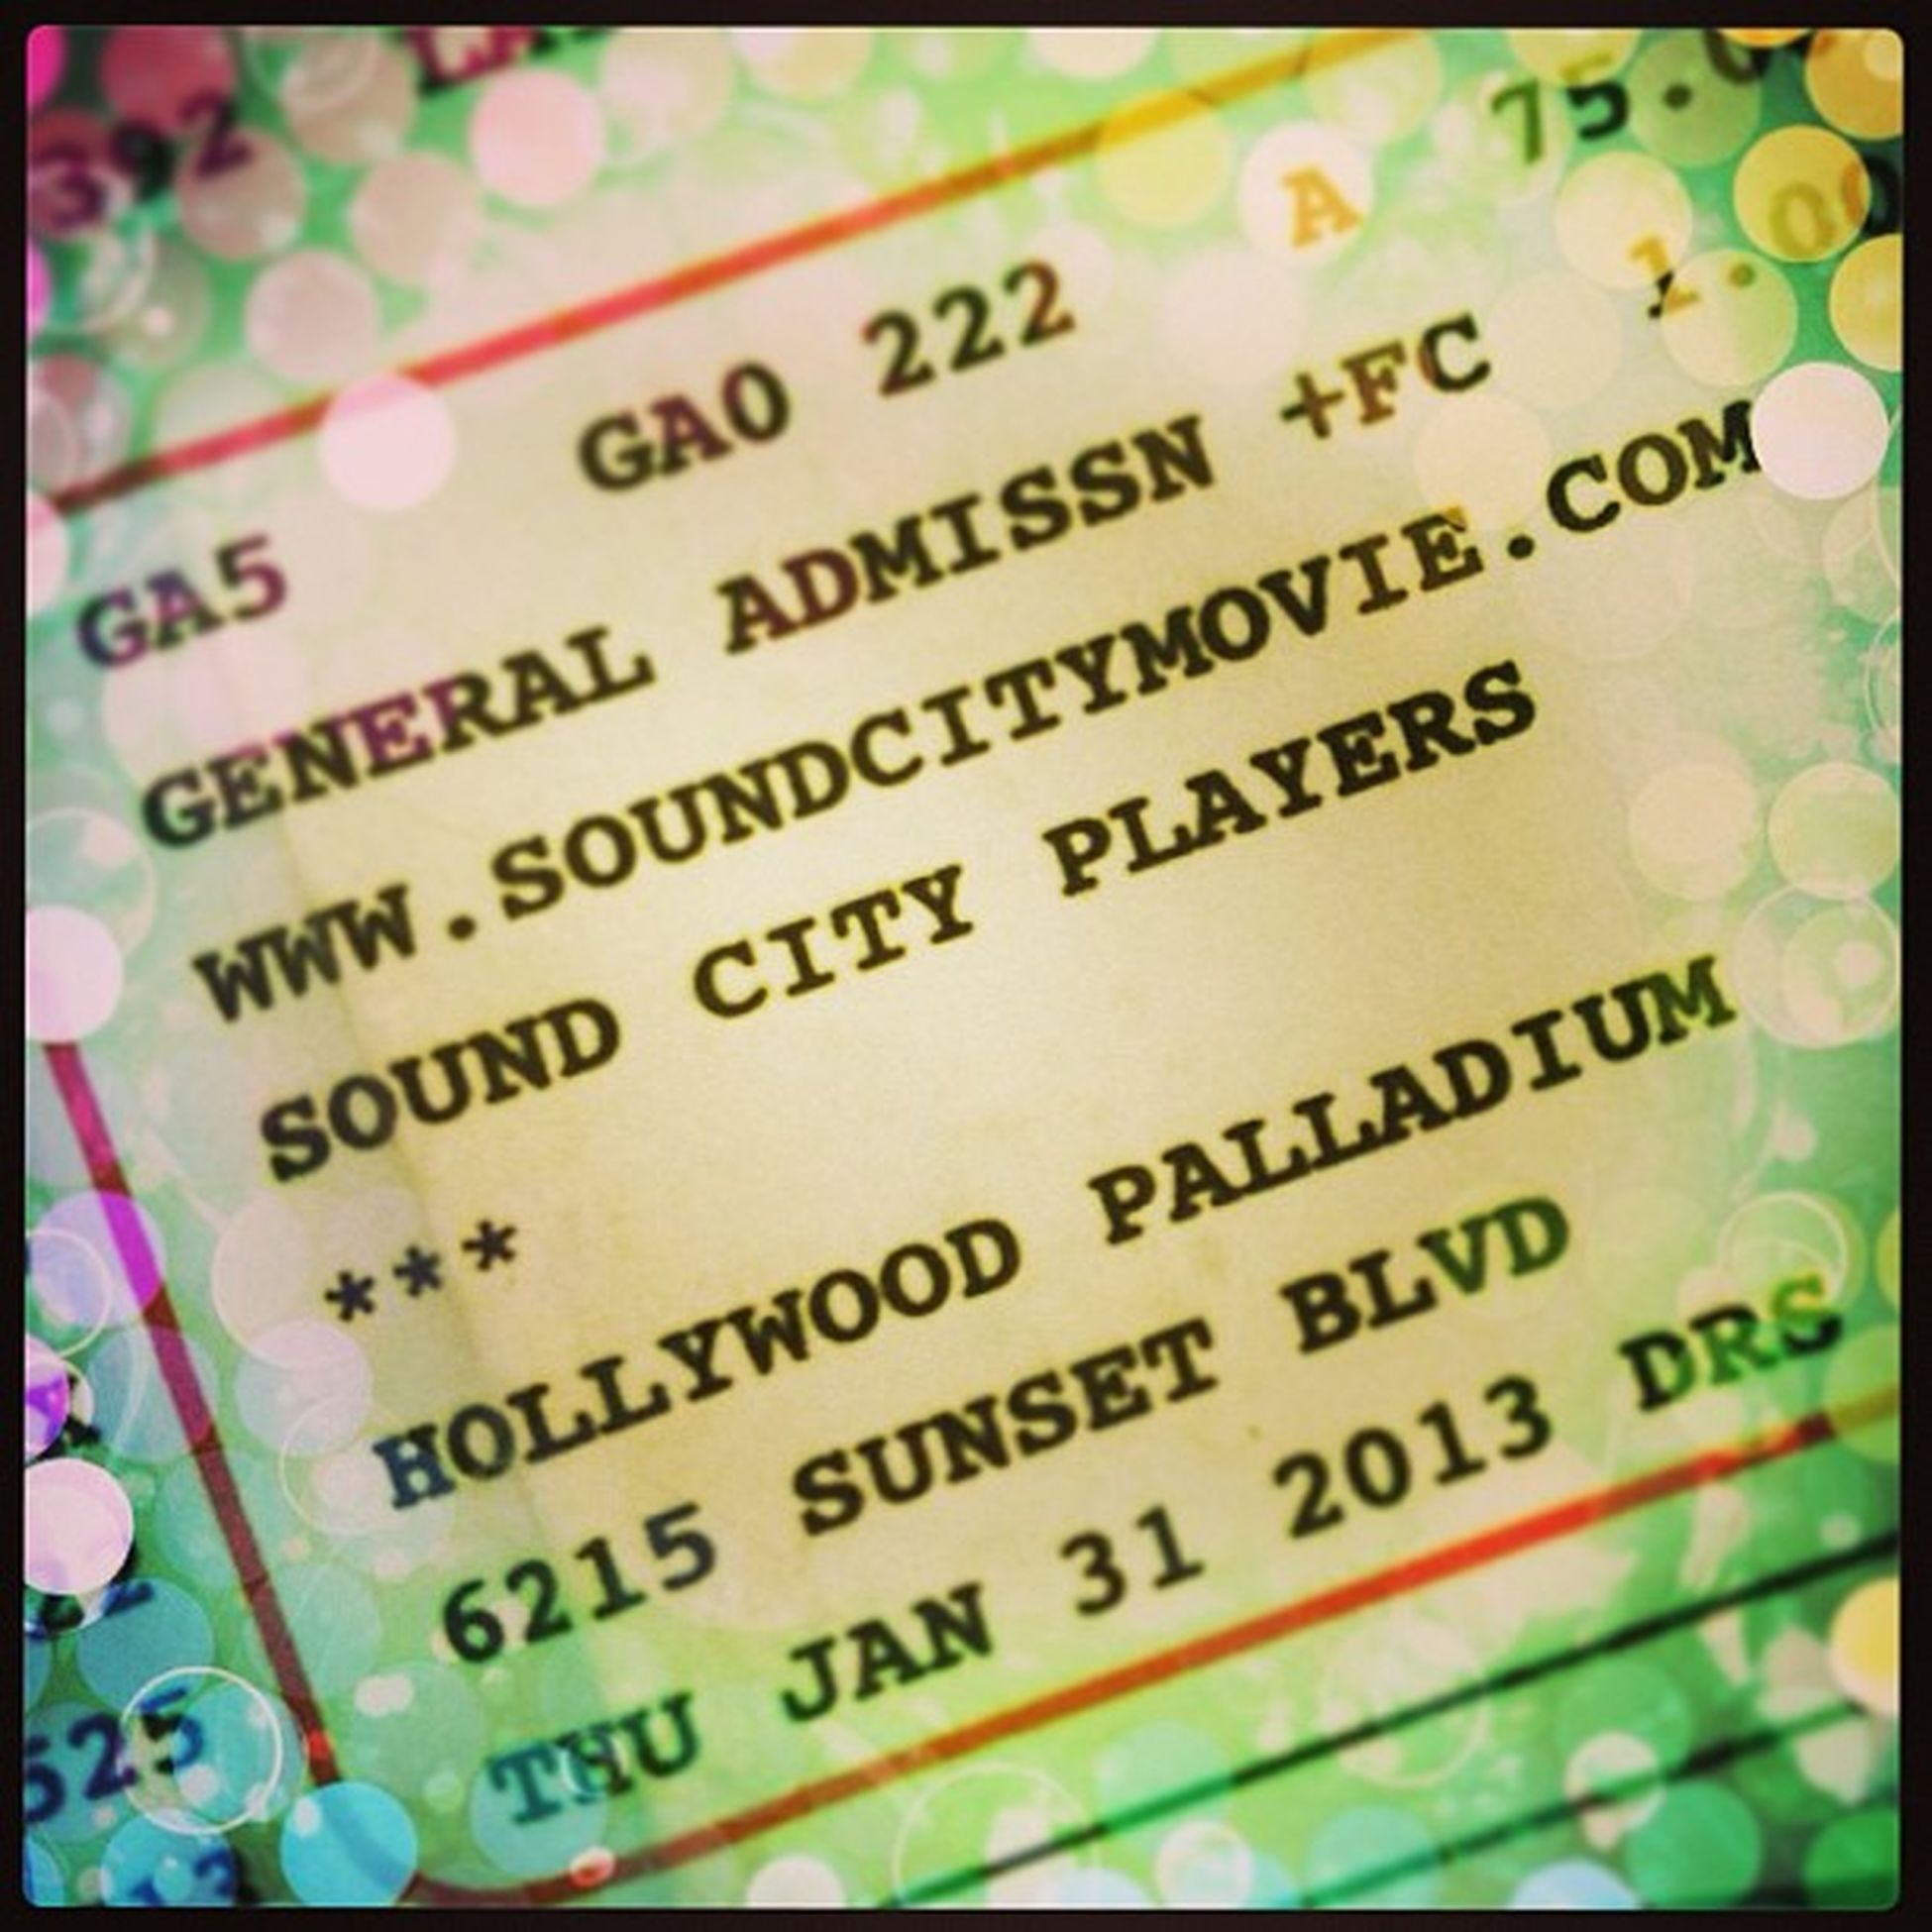 Ticket in hand...gonna be EPIC Soundcityplayers Davegrohl Palladium